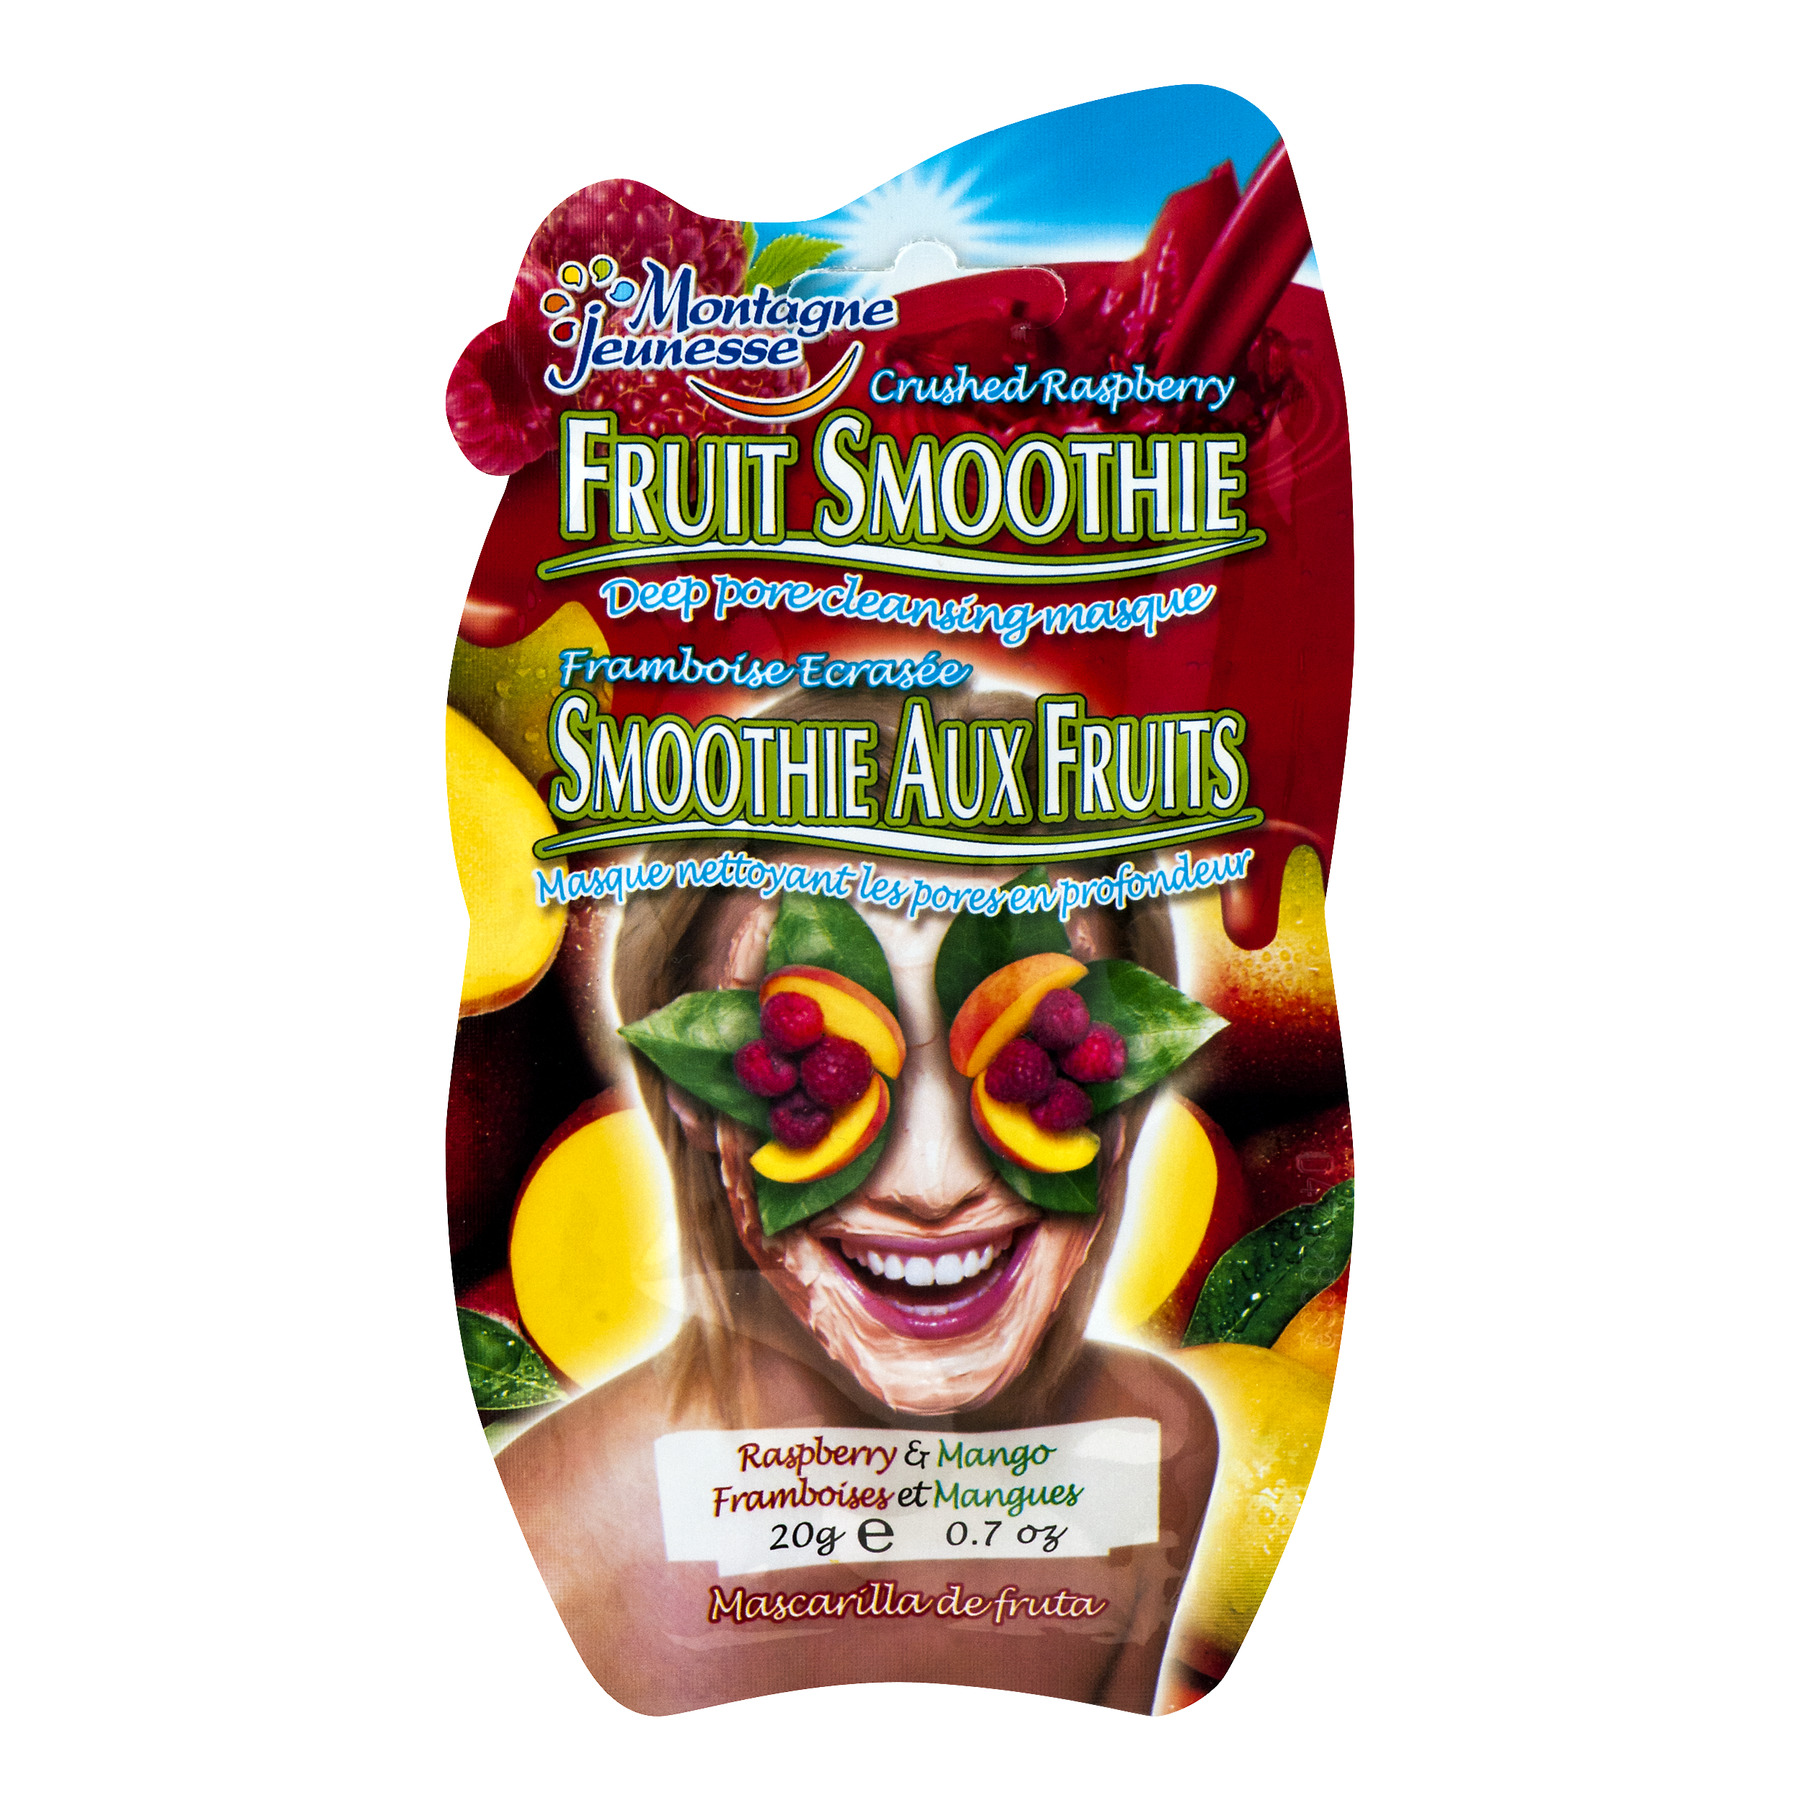 7th Heaven Fruit Smoothie Face Mask with Peach, Mango + Raspberry, 0.7 oz